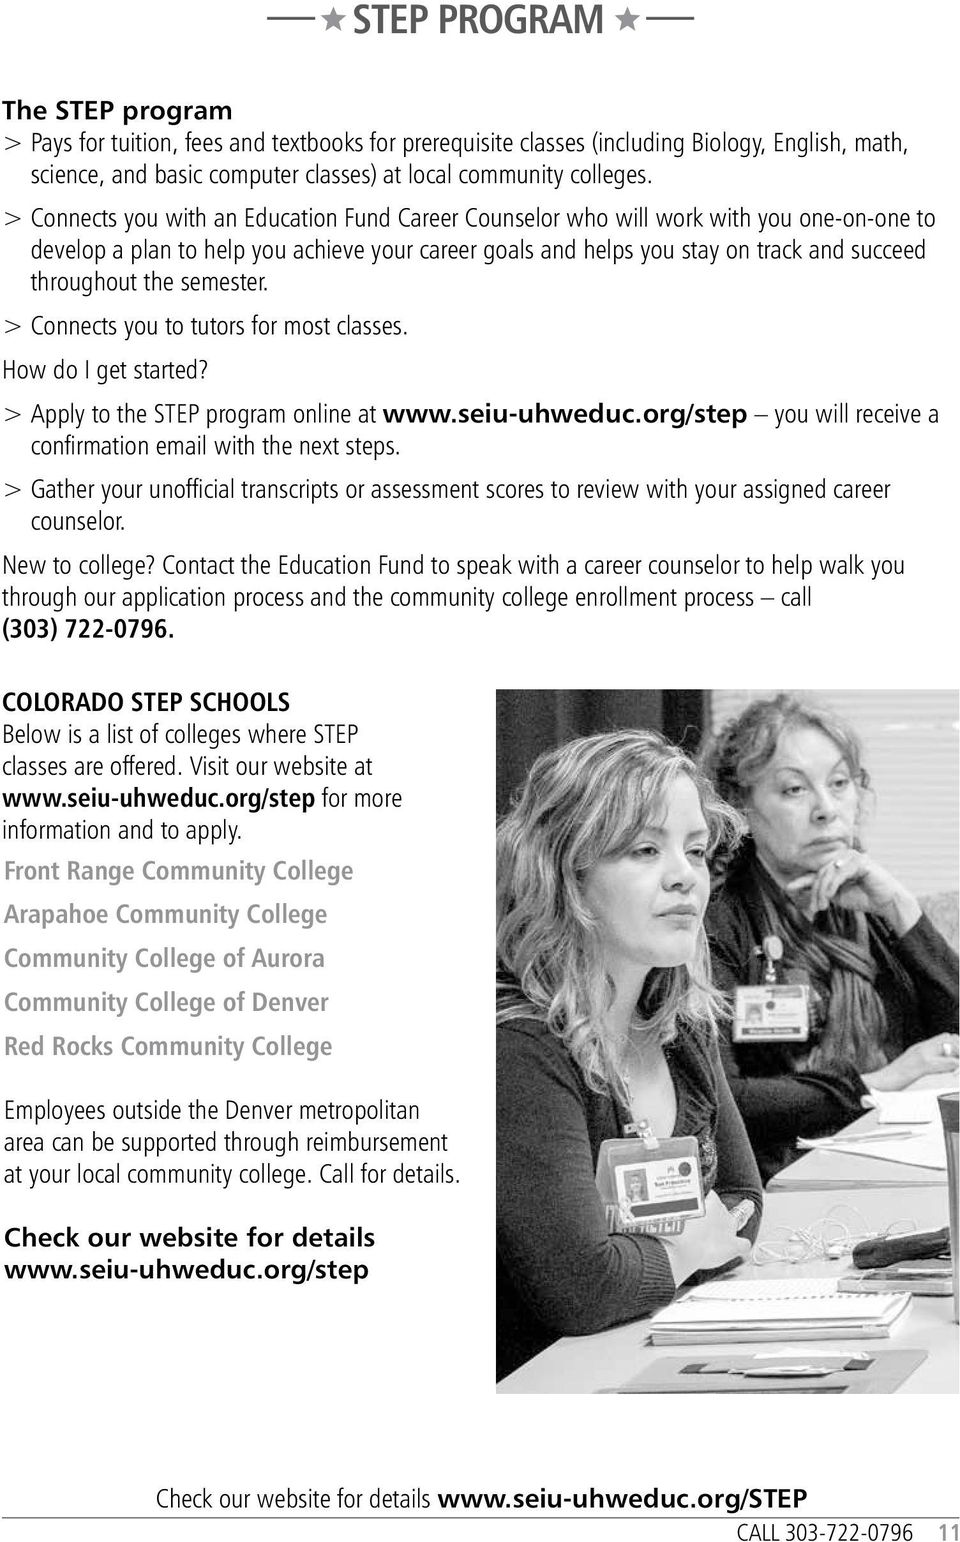 semester. > Connects you to tutors for most classes. How do I get started? > Apply to the STEP program online at www.seiu-uhweduc.org/step you will receive a confirmation email with the next steps.